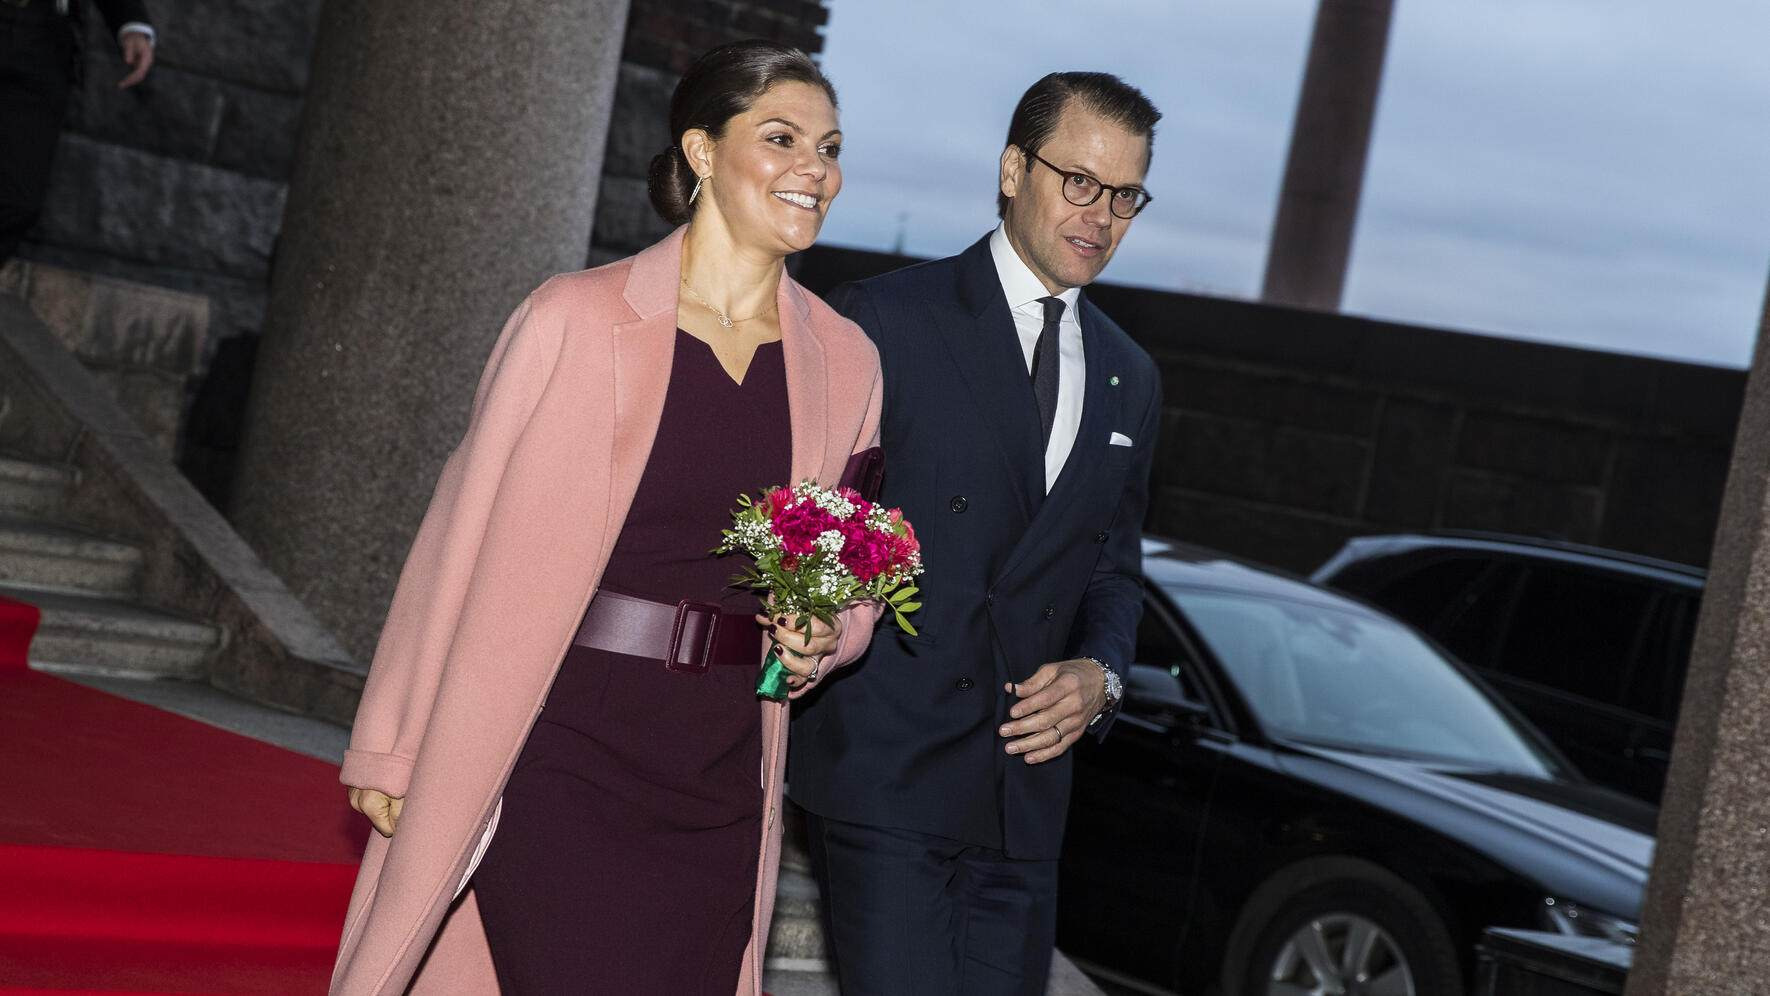 STOCKHOLM, SWEDEN - NOVEMBER 14: Princess Victoria of Sweden and Prince Daniel of Sweden leave Stockholm City Hall after an official lunch in connection with the Italian state visit on November 14, 2018 in Stockholm, Sweden. The Italian president is on a 3 day visit to Sweden where they will focus on digitization and sustainability, European cooperation and research, and culture. (Photo by MICHAEL CAMPANELLA/Getty Images)